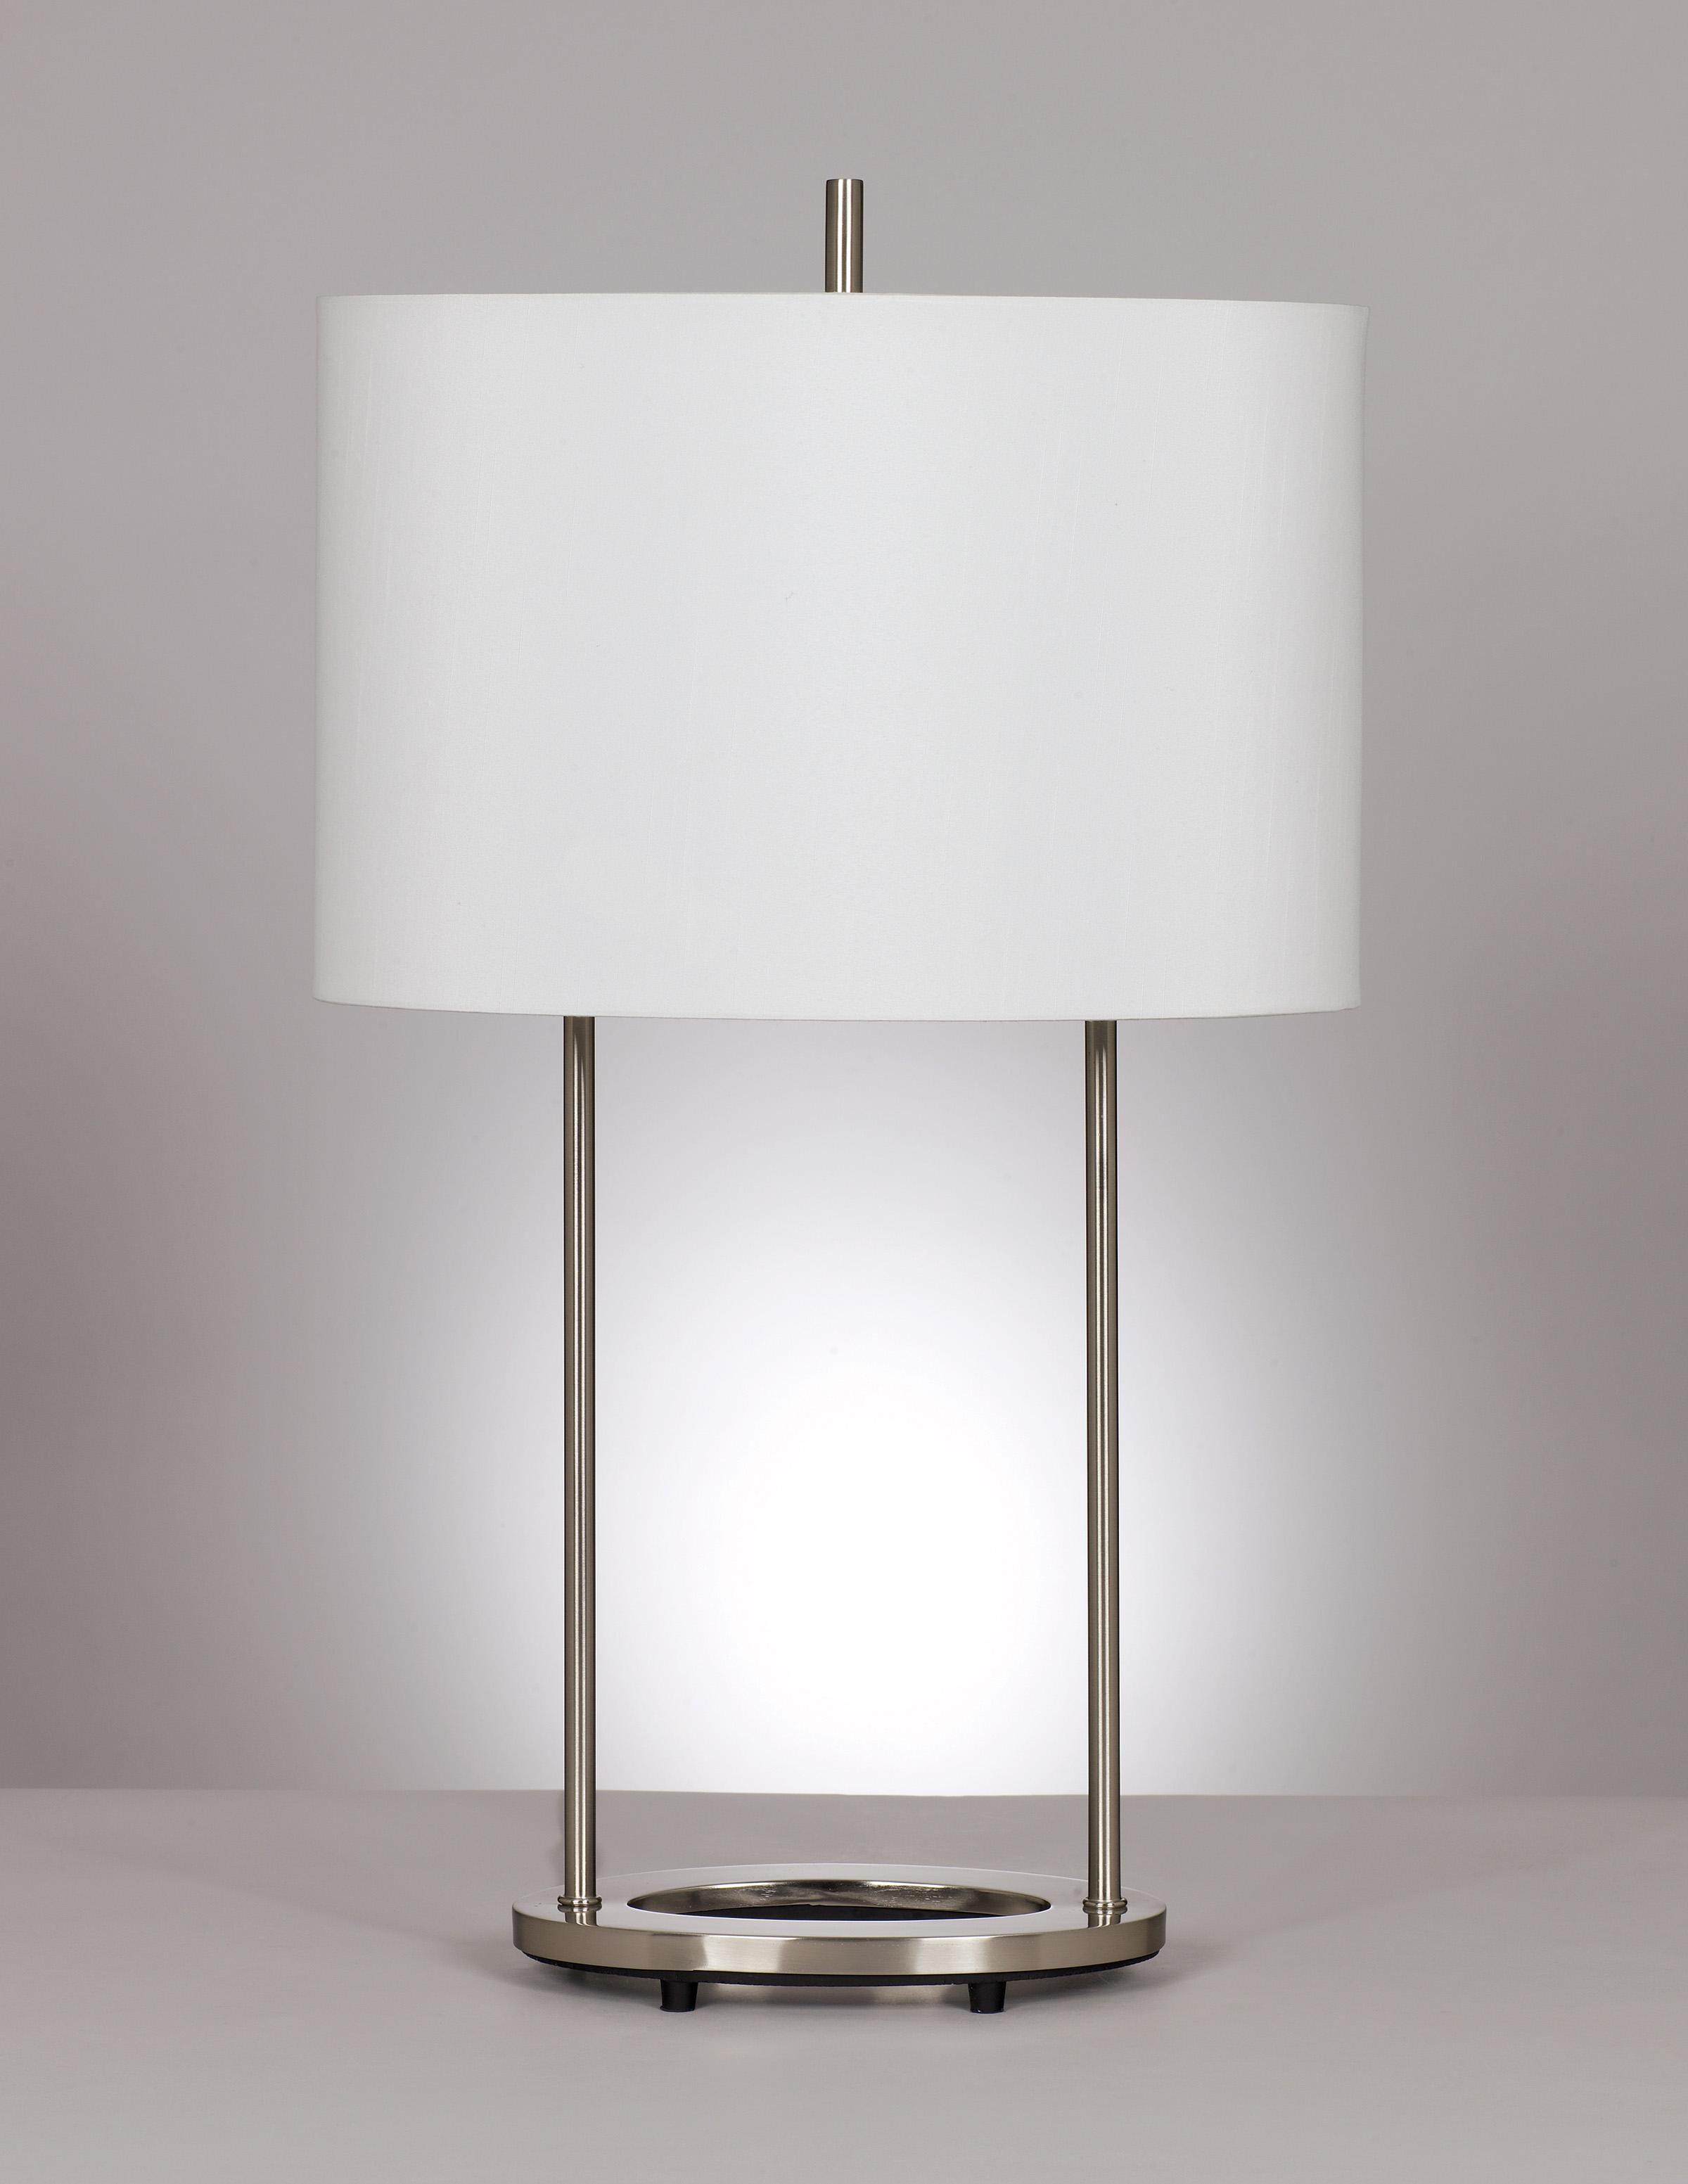 Signature Design by Ashley Lamps - Metro Modern Set of 2 Maisie Table Lamps - Item Number: L413124